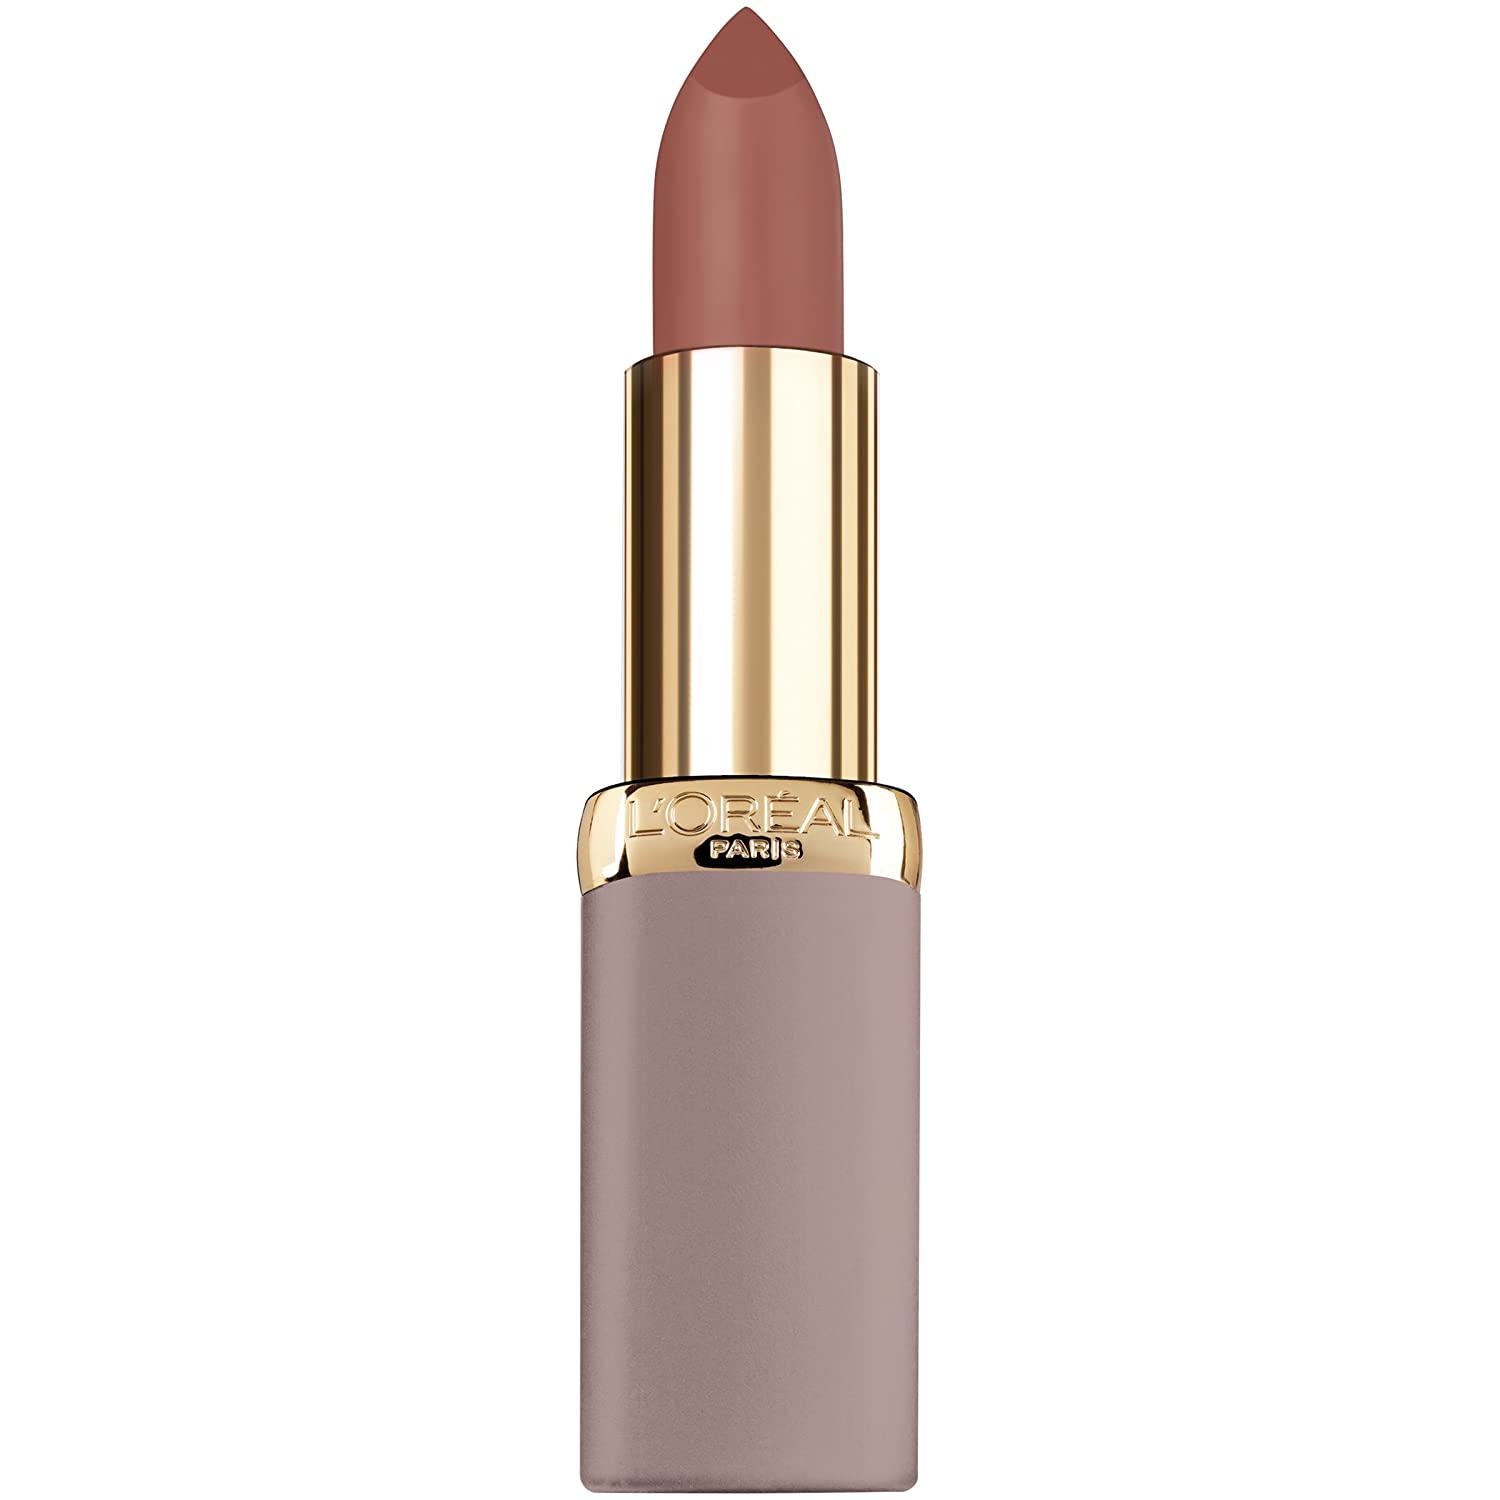 L'Oreal Paris Cosmetics Colour Riche Ultra Matte Highly Pigmented Nude Lipstick, All Out Pout, 0.13 Ounce